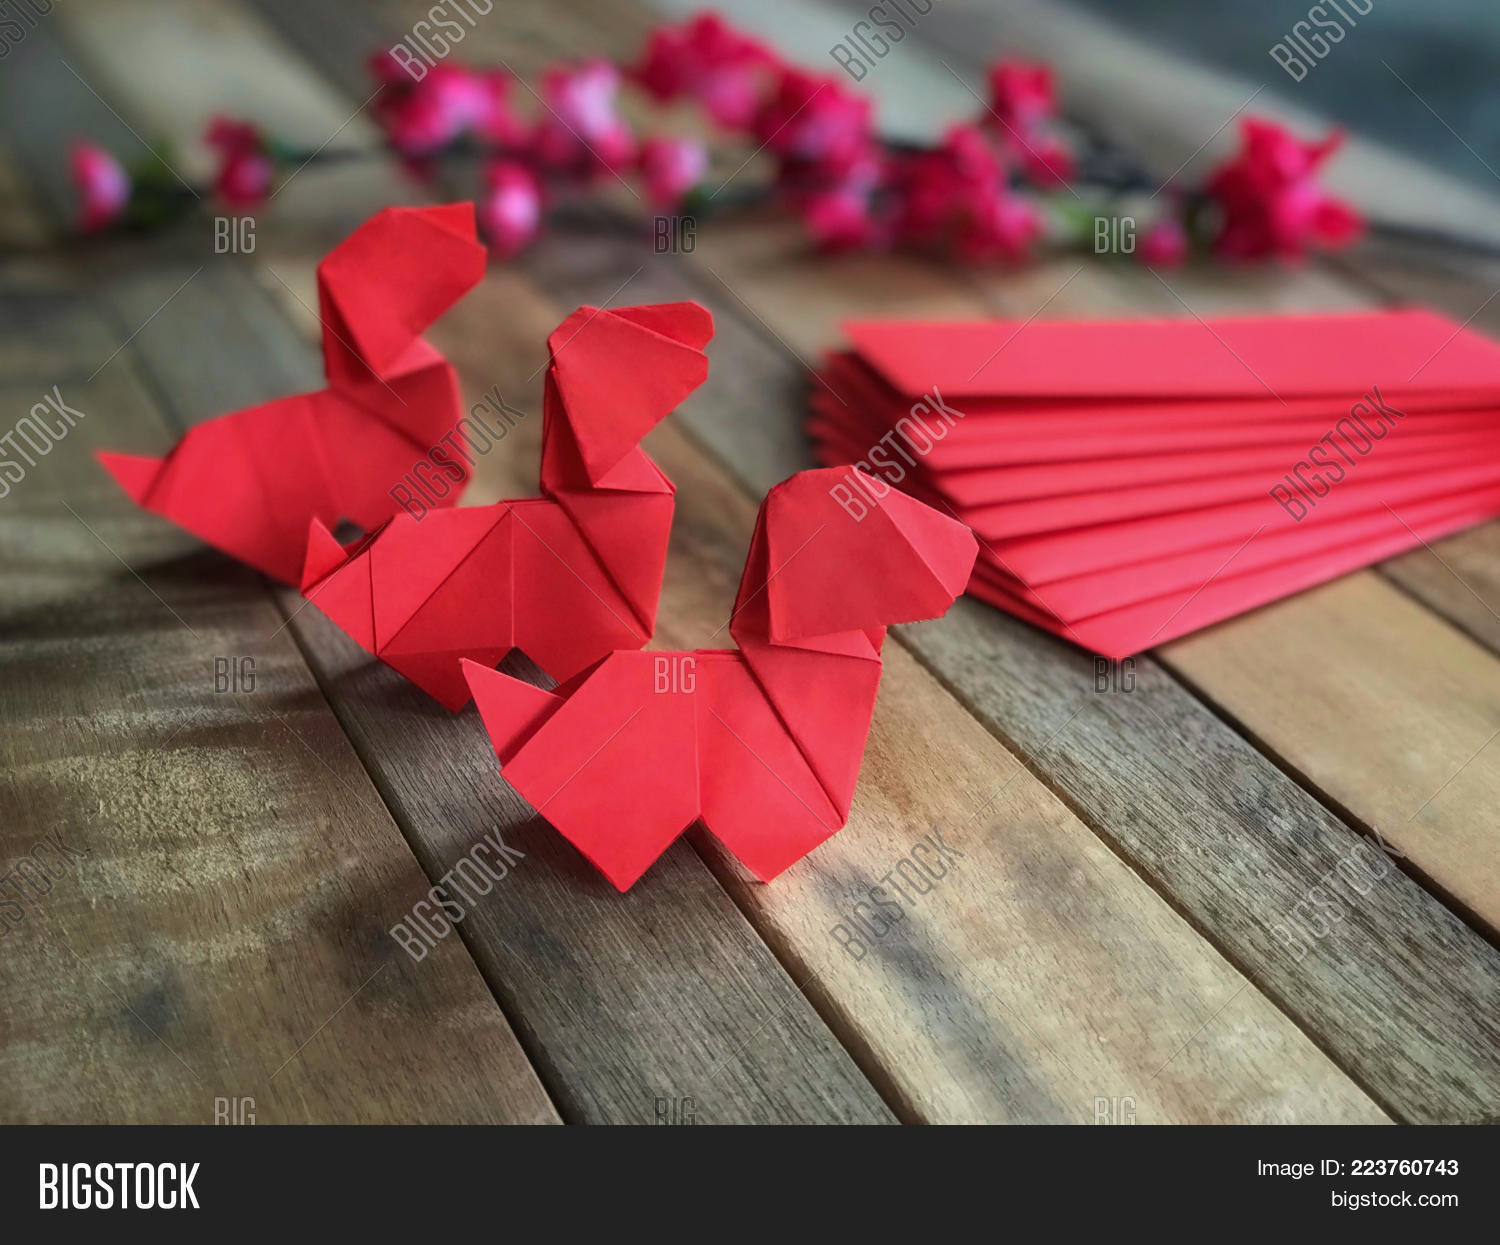 Chinese new year concept red image photo bigstock for Ang pao origami